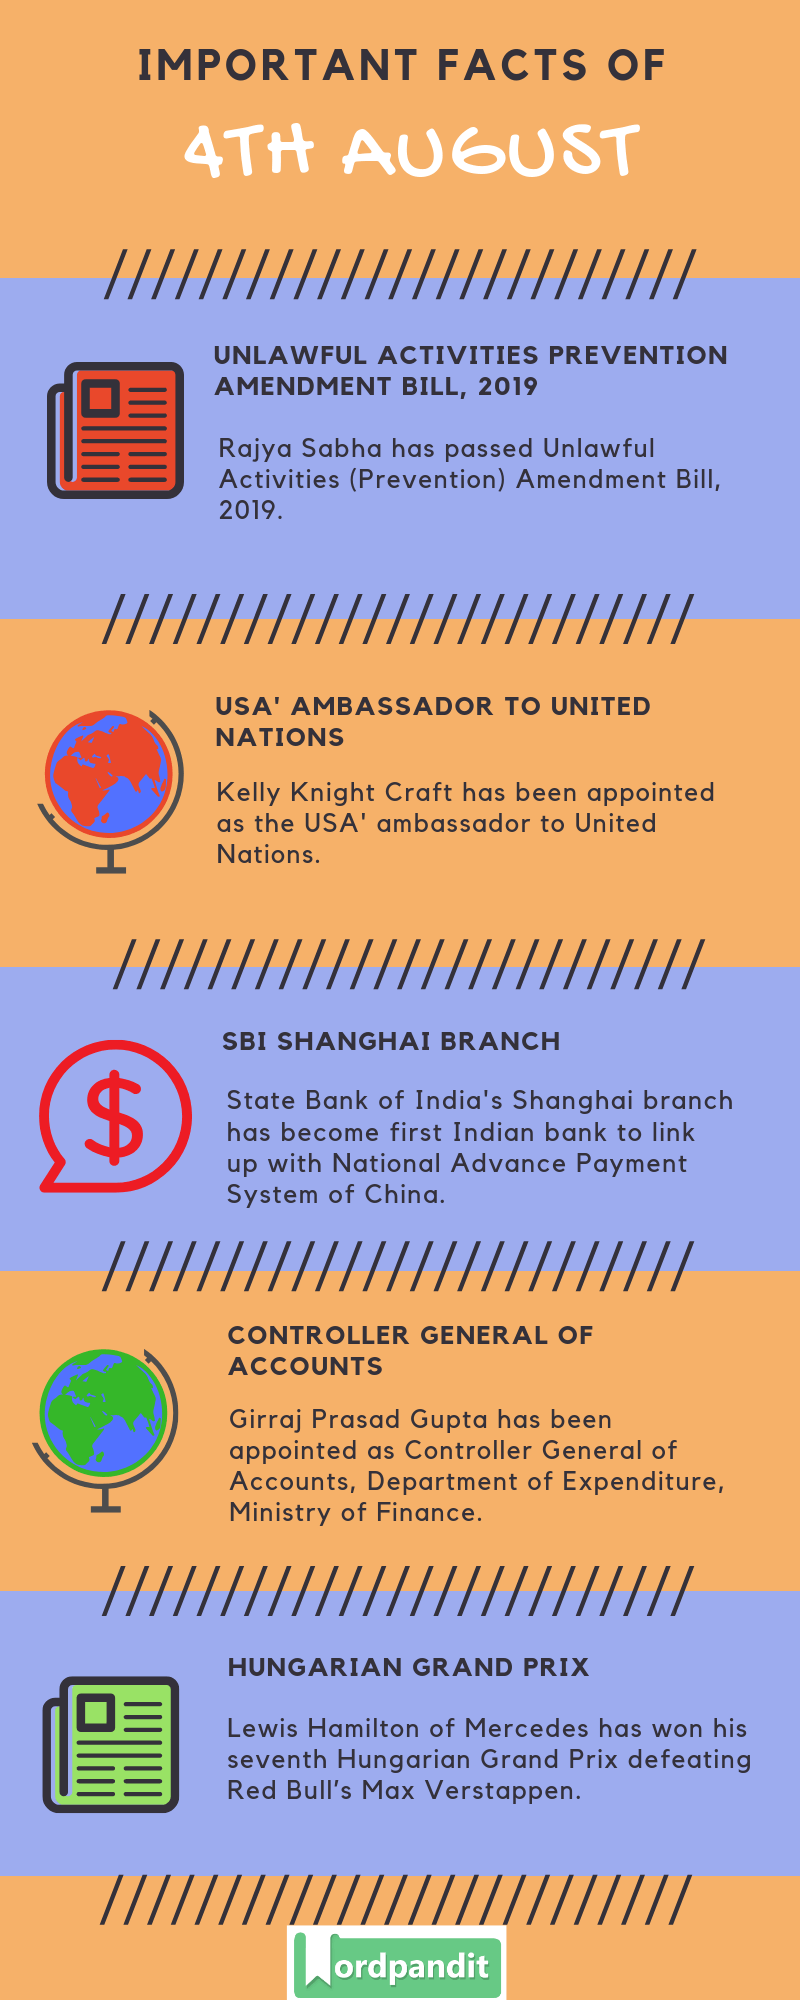 Daily Current Affairs 4 August 2019 Current Affairs Quiz 4 August 2019 Current Affairs Infographic